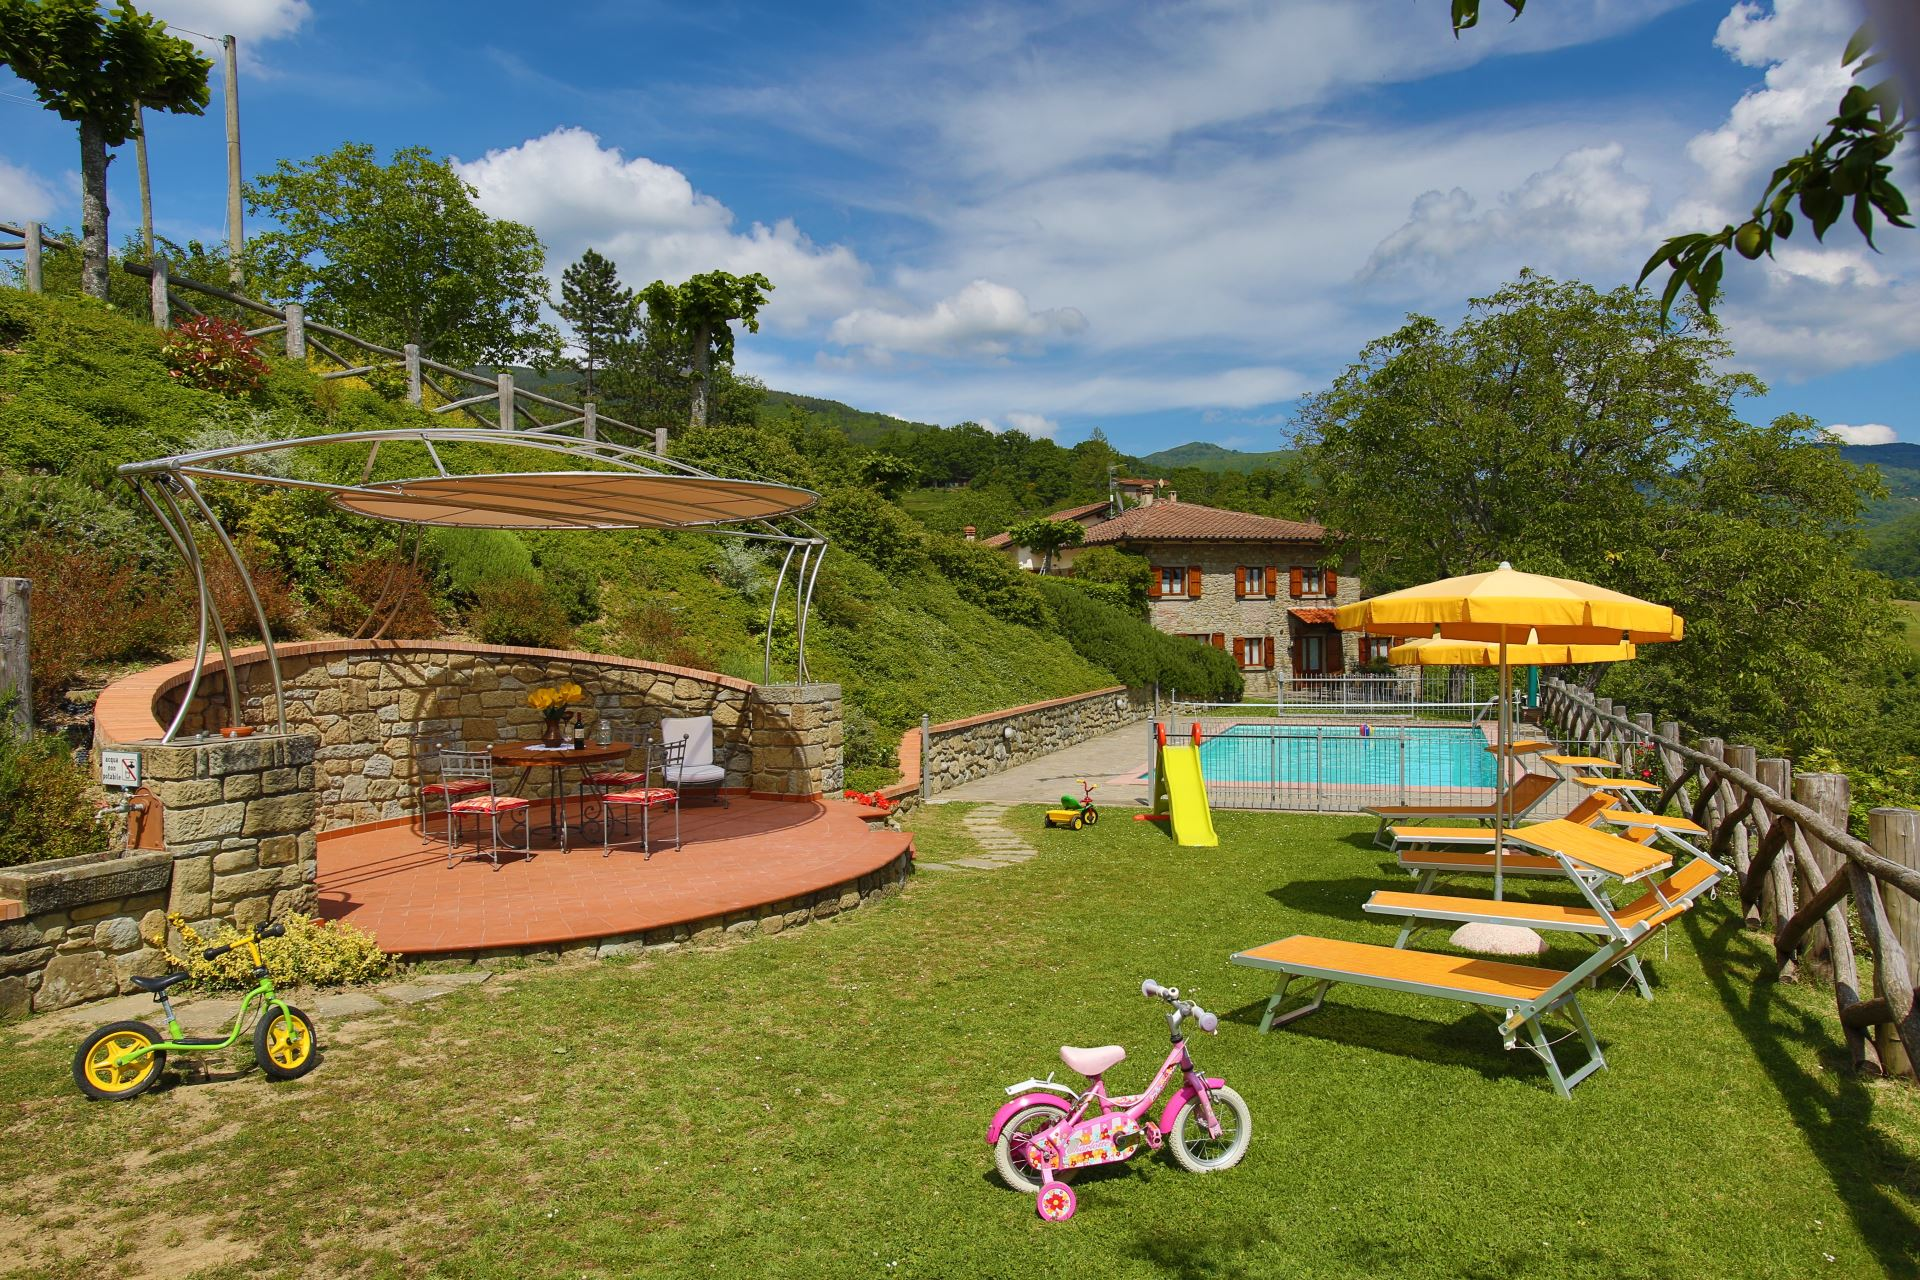 Villa Scatolaia, fenced private pool, perfect for children, sleeps 14